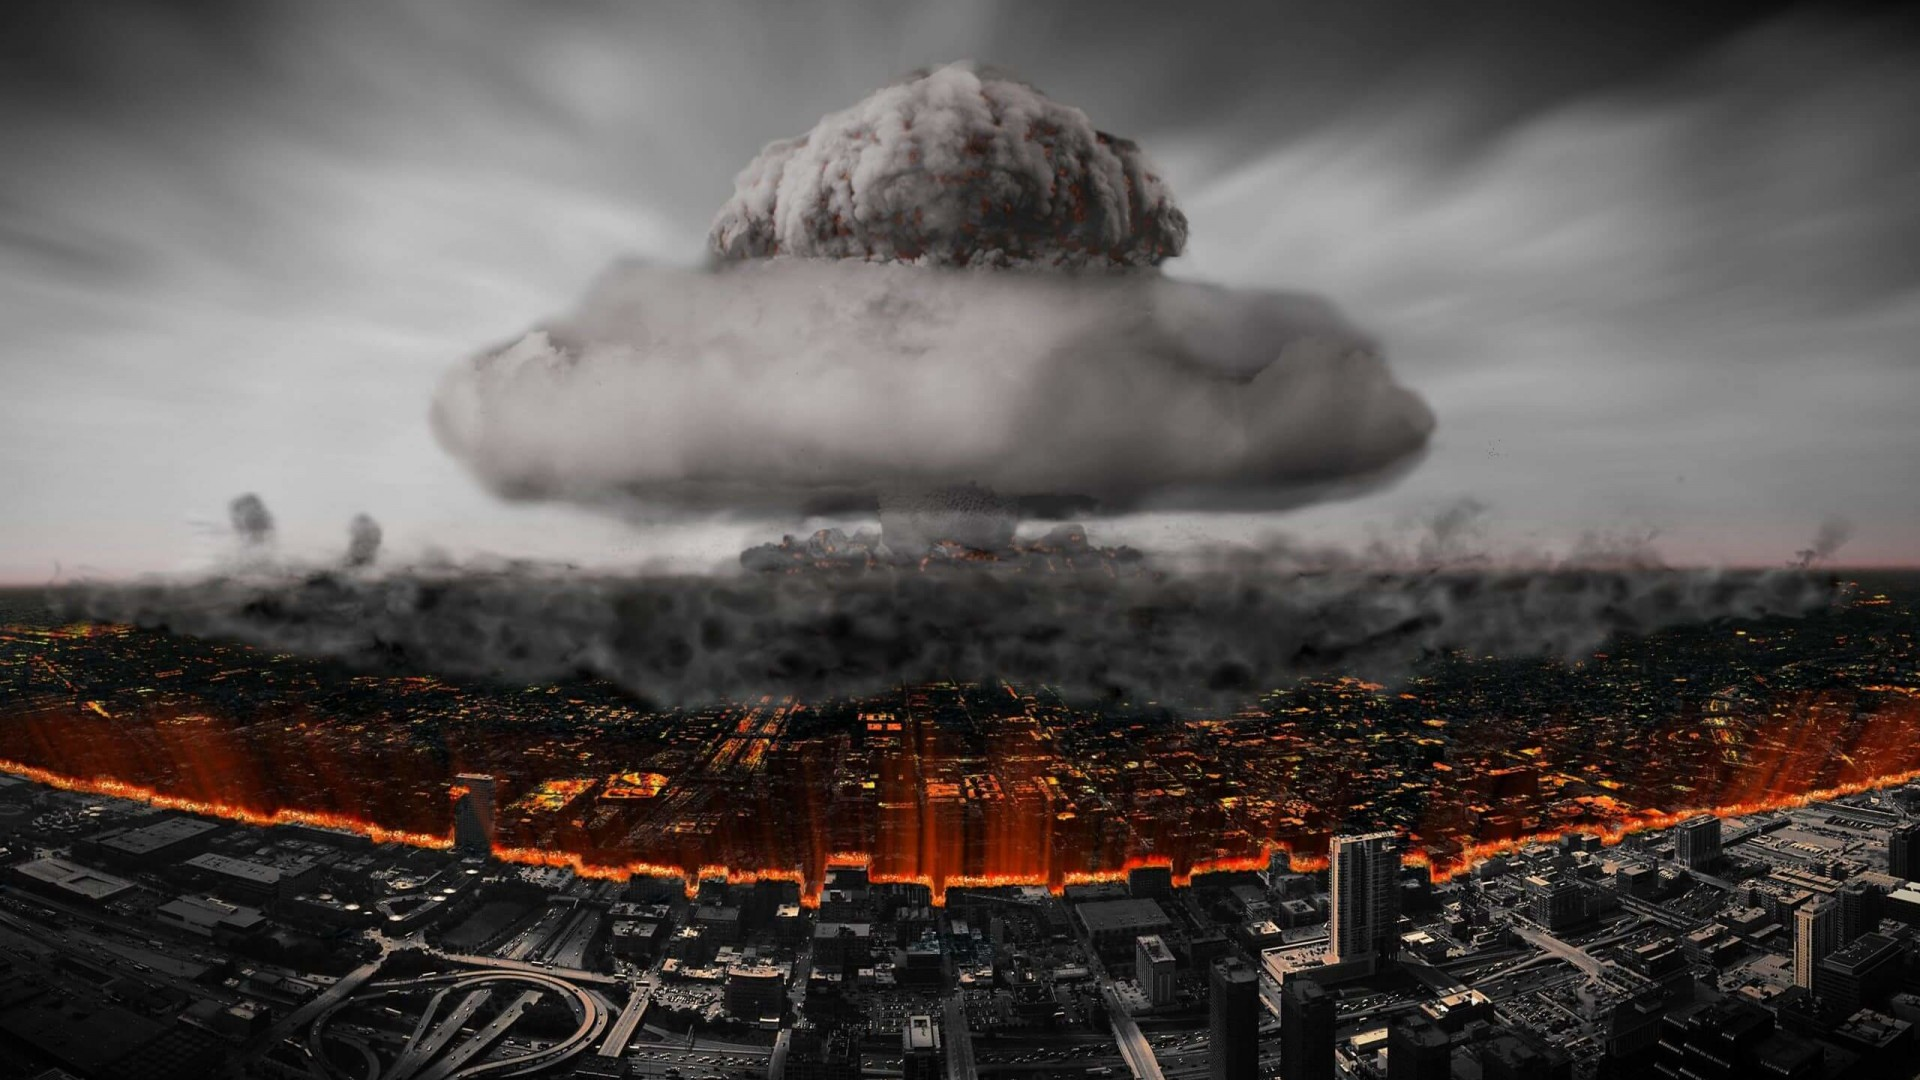 Nuclear Mushroom Cloud Wallpaper for Desktop 1920x1080